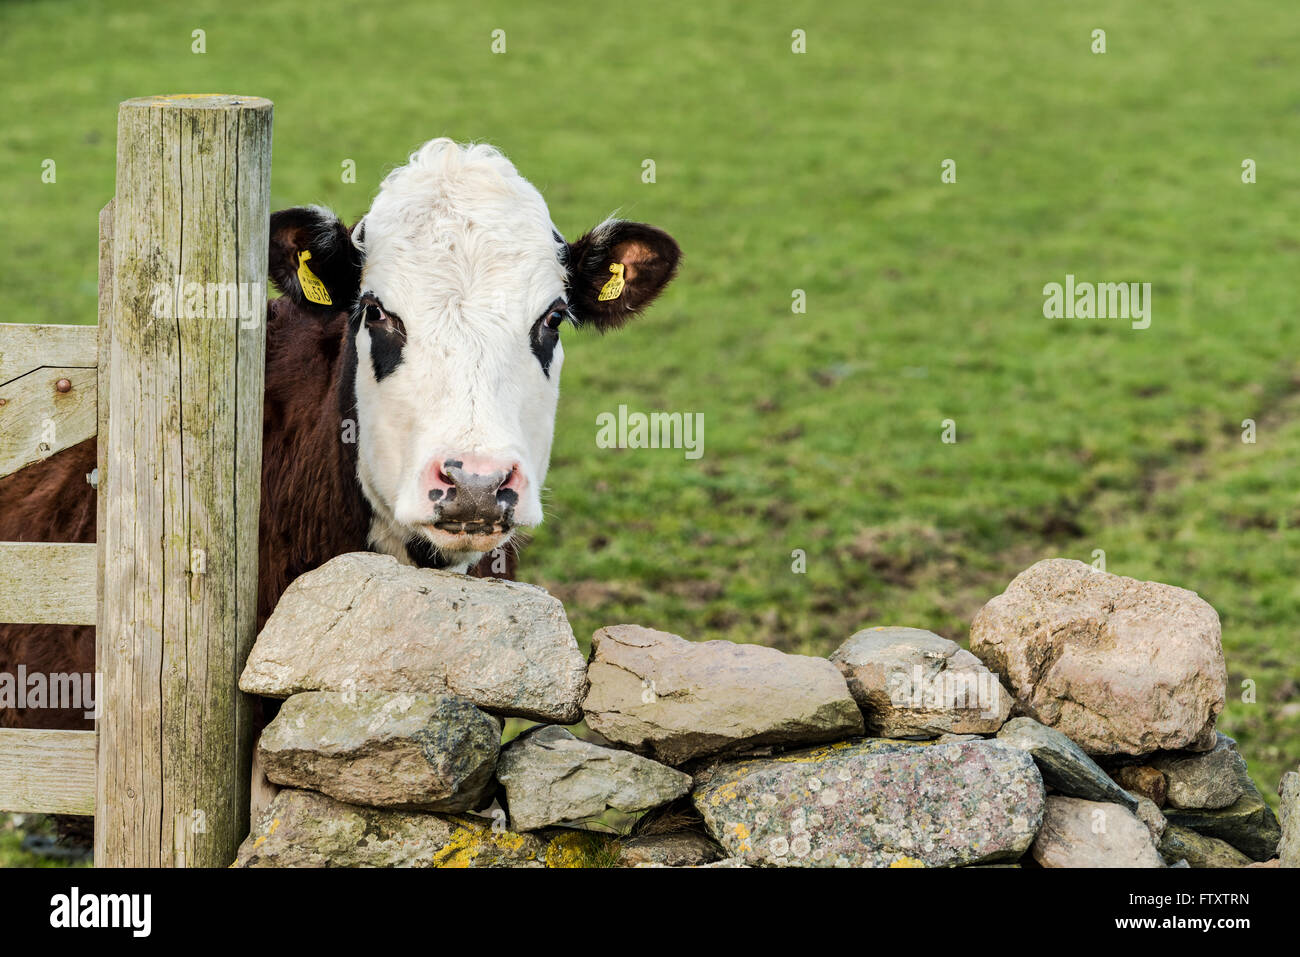 funny cow looking over wooden fence and stone wall stock photo